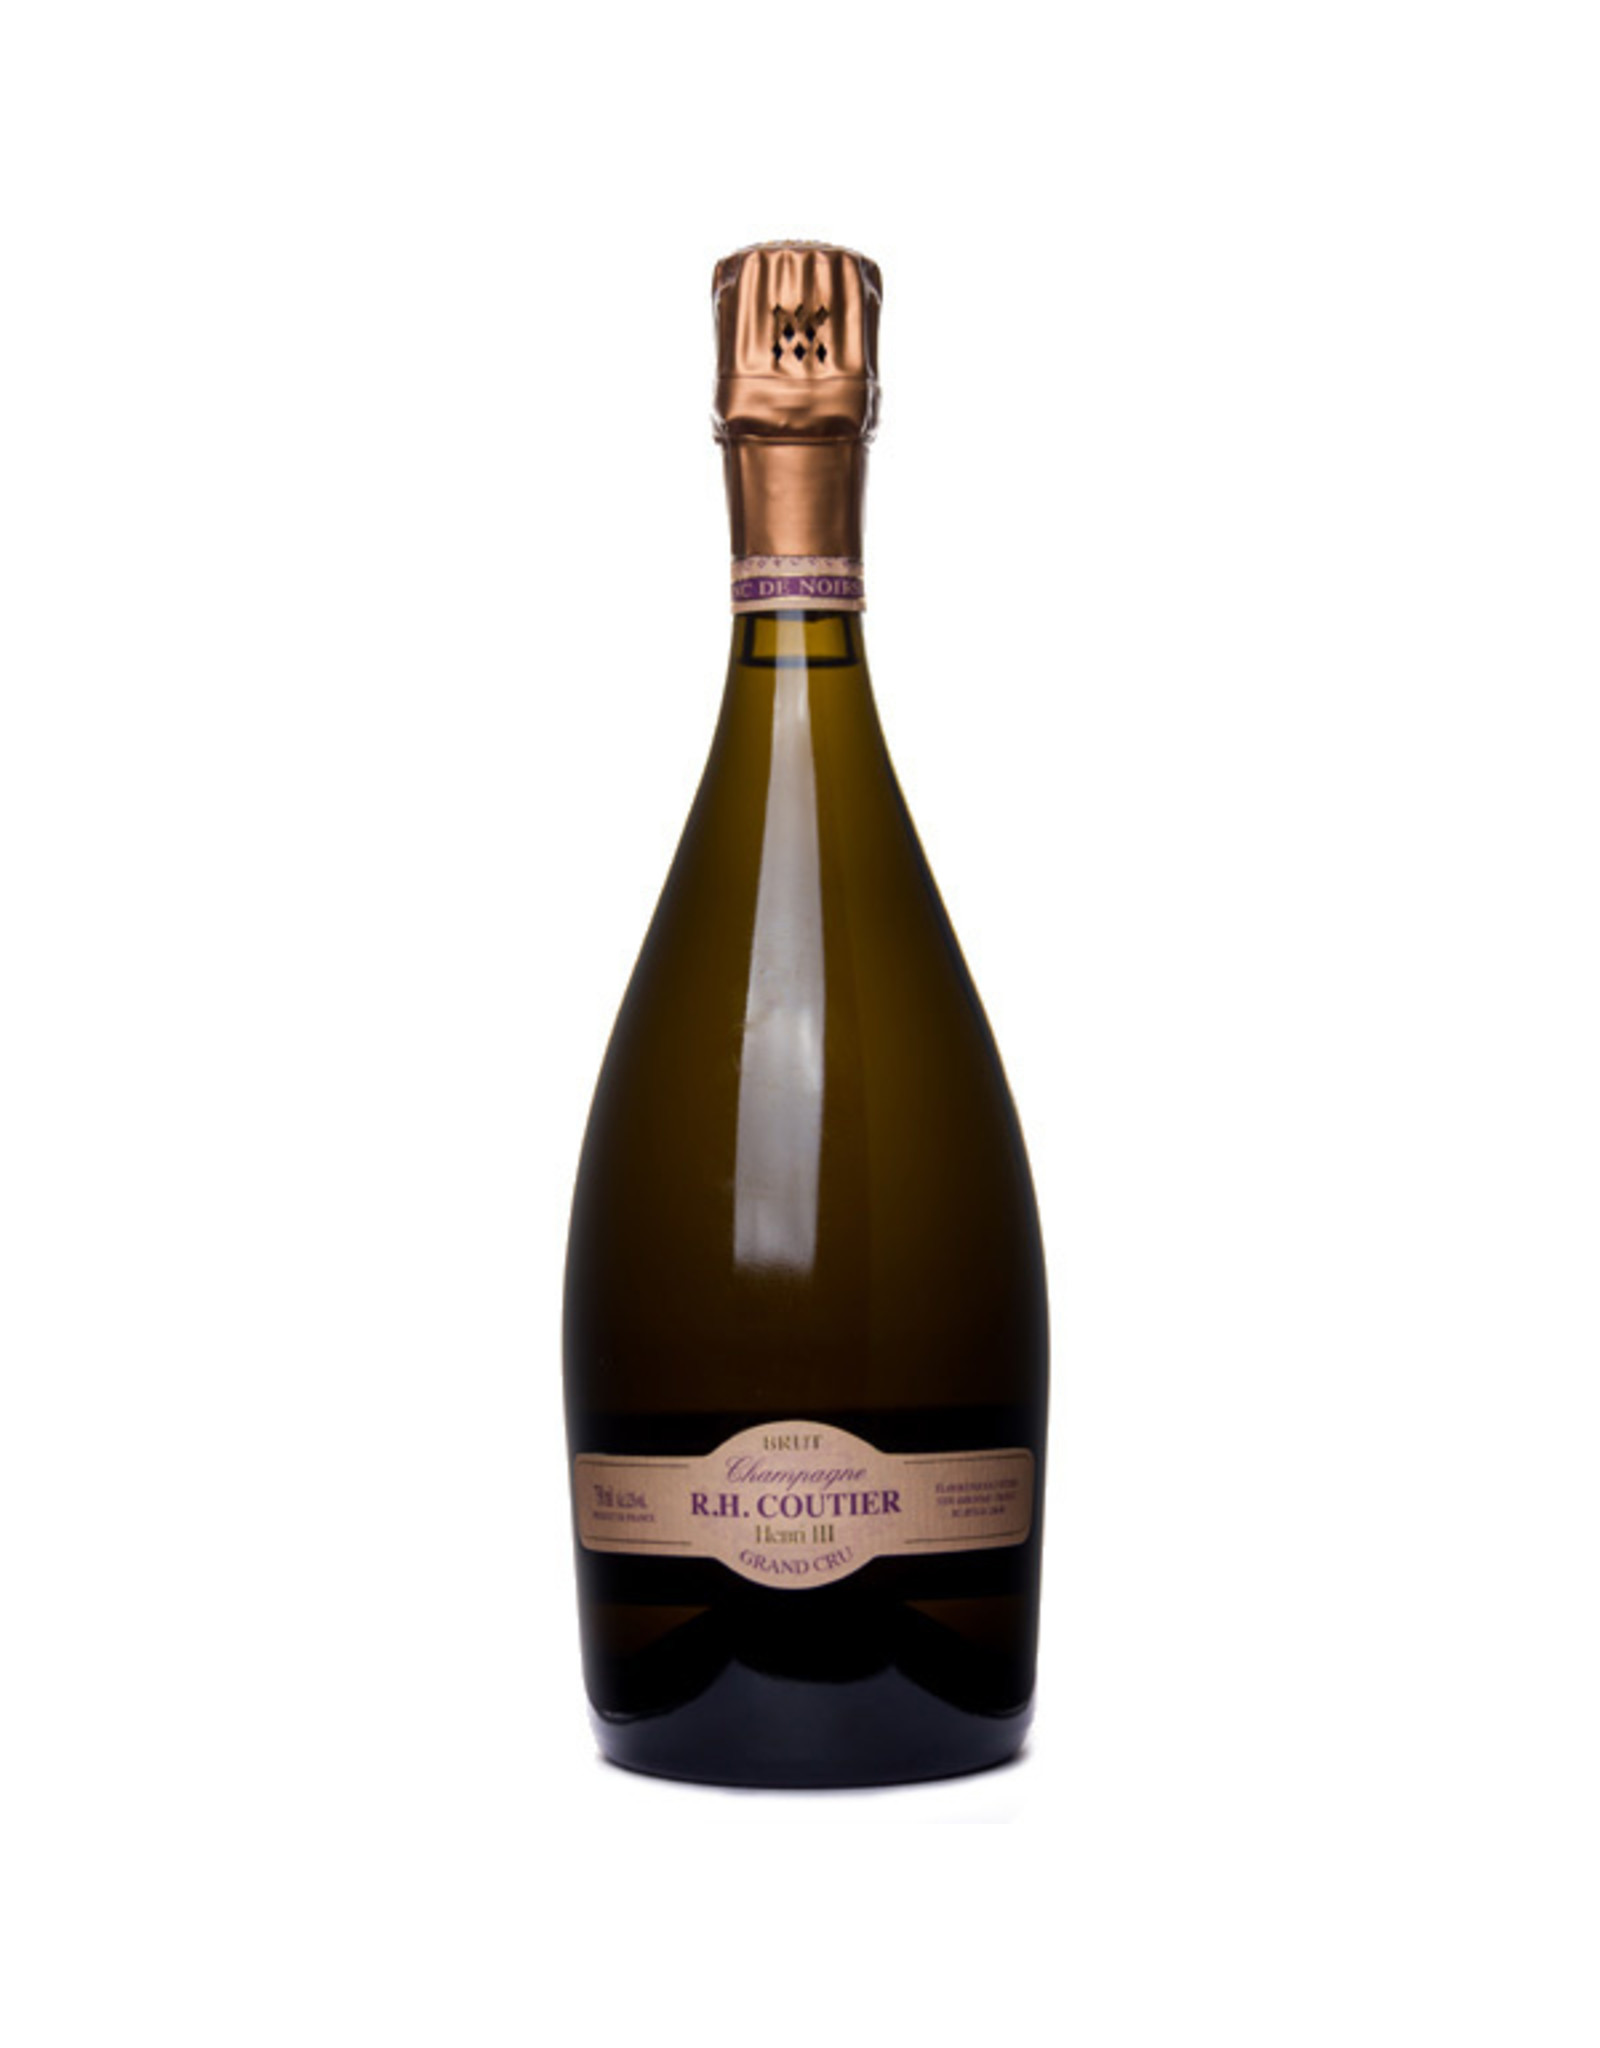 R.H. Coutier, Ambonnay Coutier Champagne Grand Cru Henri III, Ambonnay